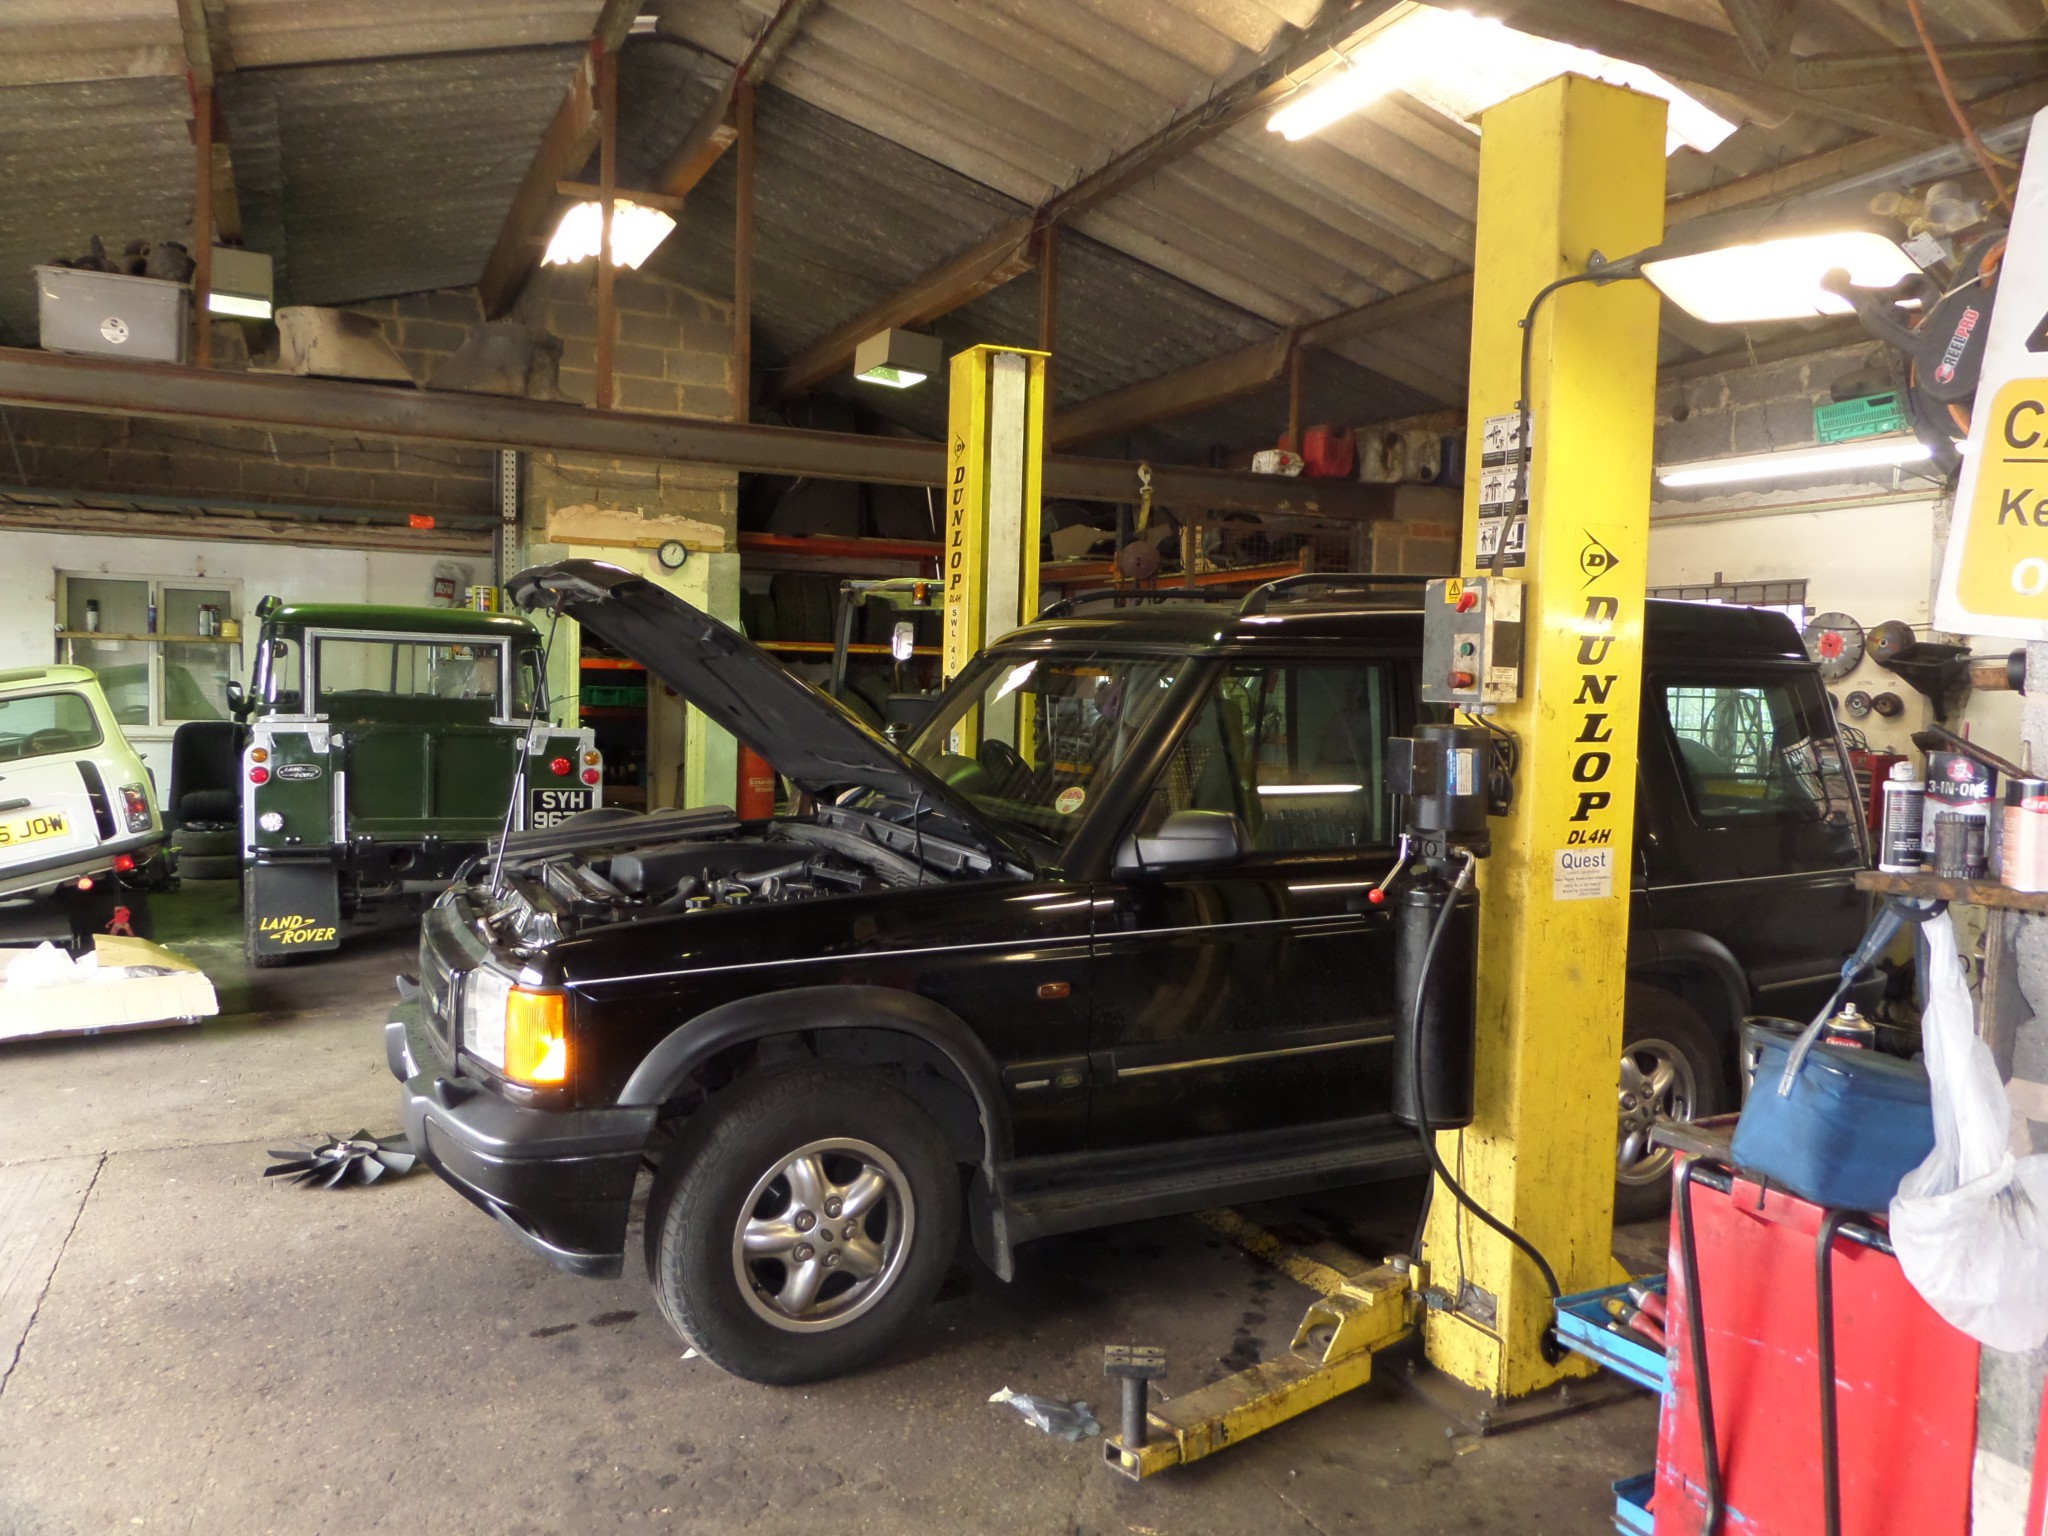 4xFortyOne - Independent Land Rover servicing